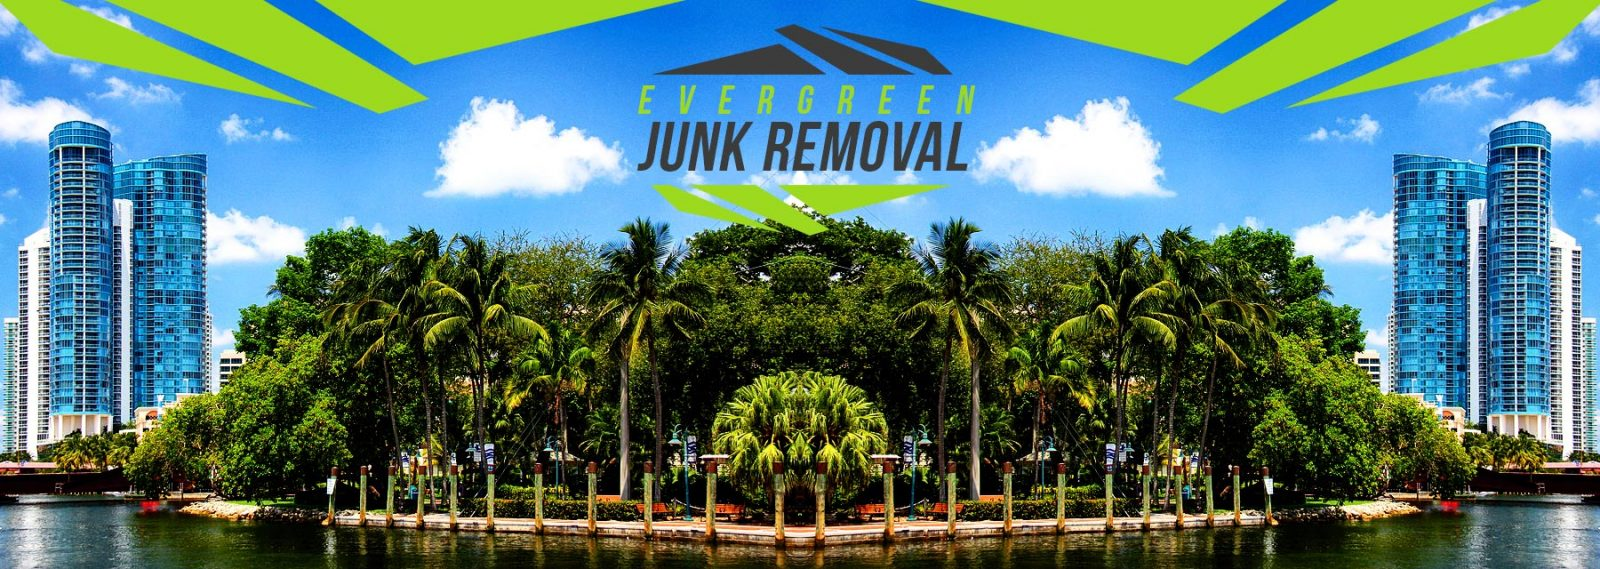 Aventura Hot Tub Removal Company